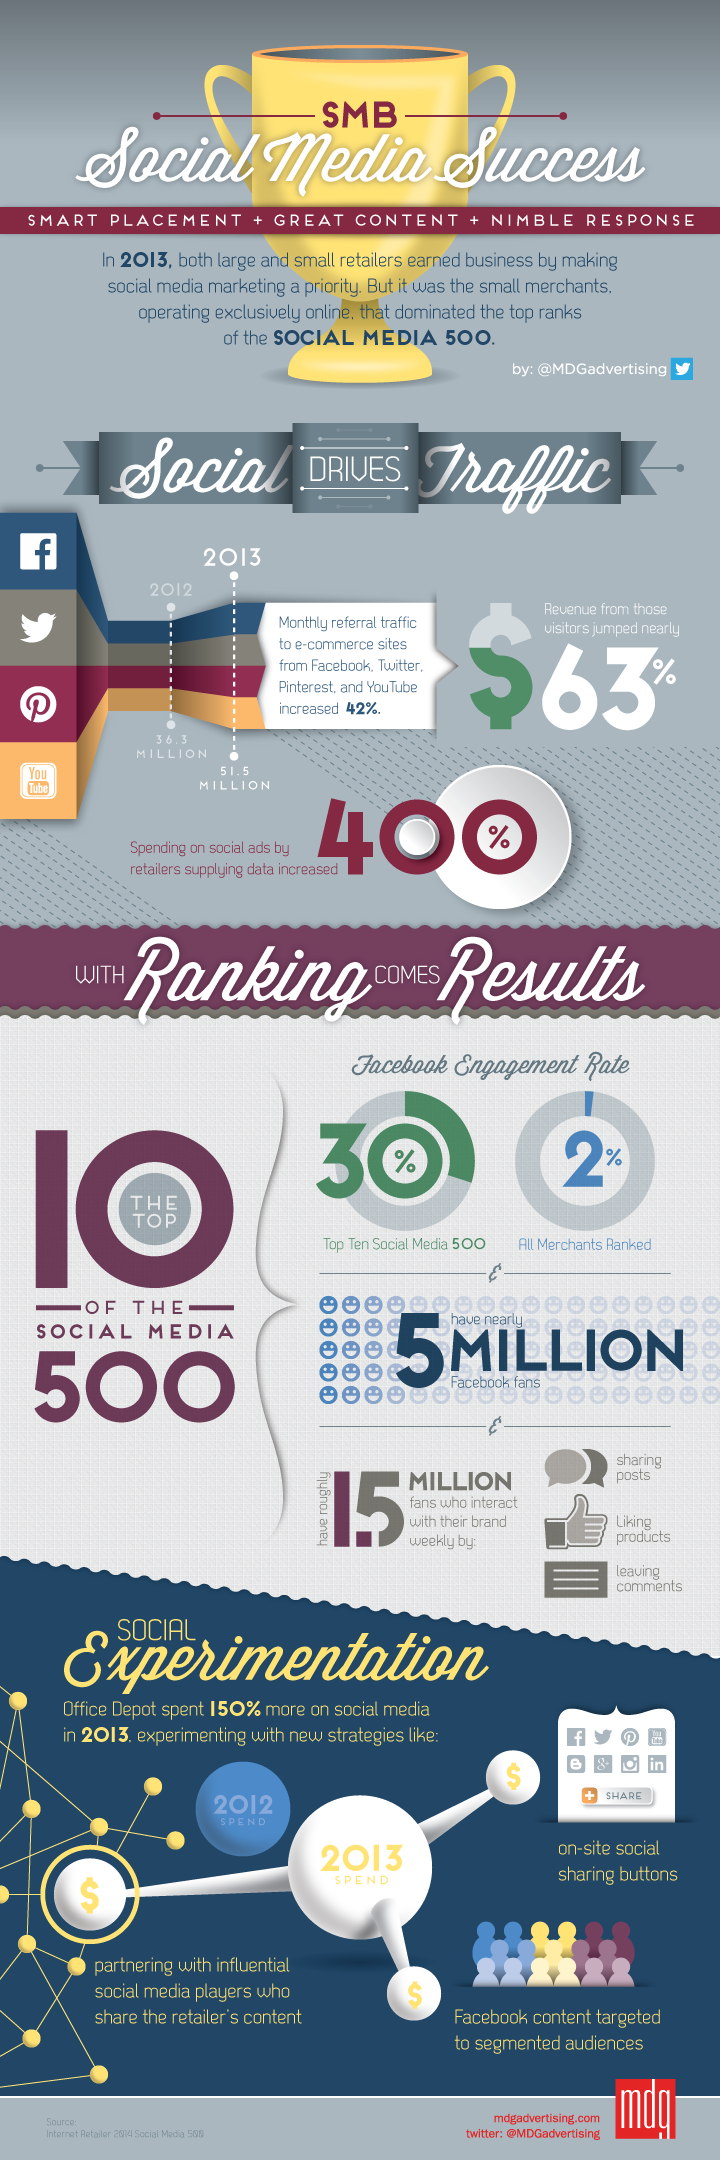 Small Retailers Use Great Content, Nimble Response And Smart Placement To Excel In Social Media Marketing - infographic